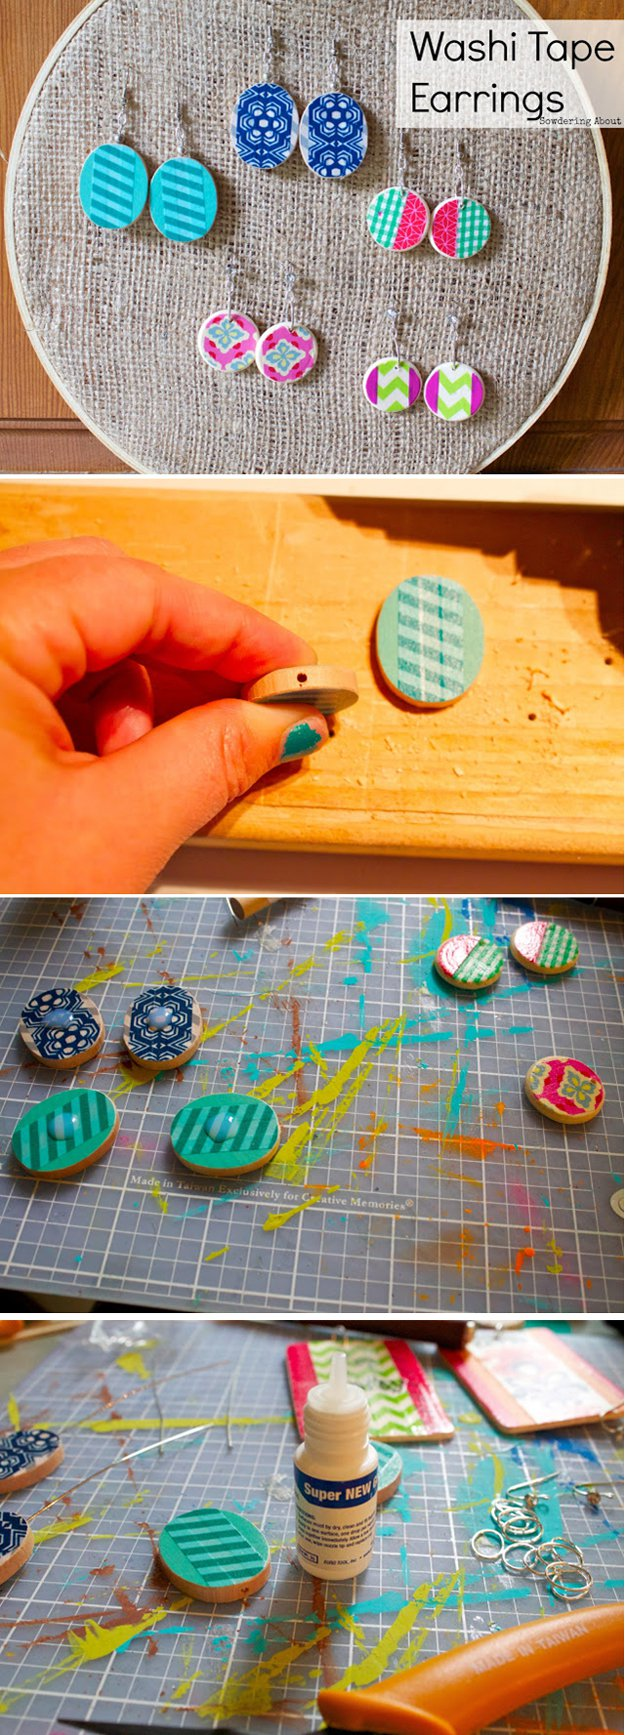 Washi Tape Crafts - DIY Wooden Washi Tape Earrings - Wall Art, Frames, Cards, Pencils, Room Decor and DIY Gifts, Back To School Supplies - Creative, Fun Craft Ideas for Teens, Tweens and Teenagers - Step by Step Tutorials and Instructions http://diyprojectsforteens.com/washi-tape-crafts